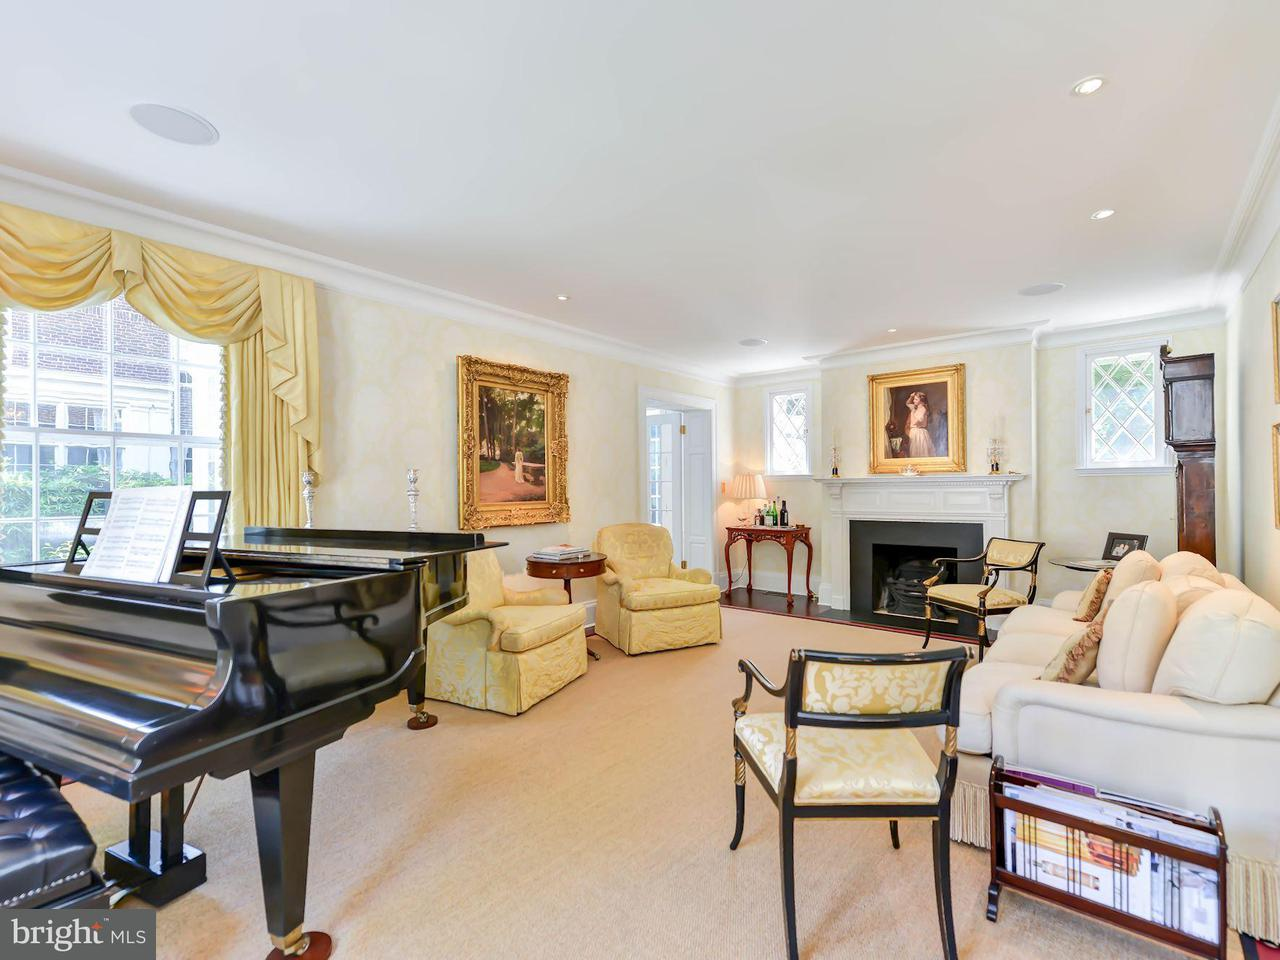 Additional photo for property listing at 2408 California St NW  Washington, District Of Columbia 20008 United States